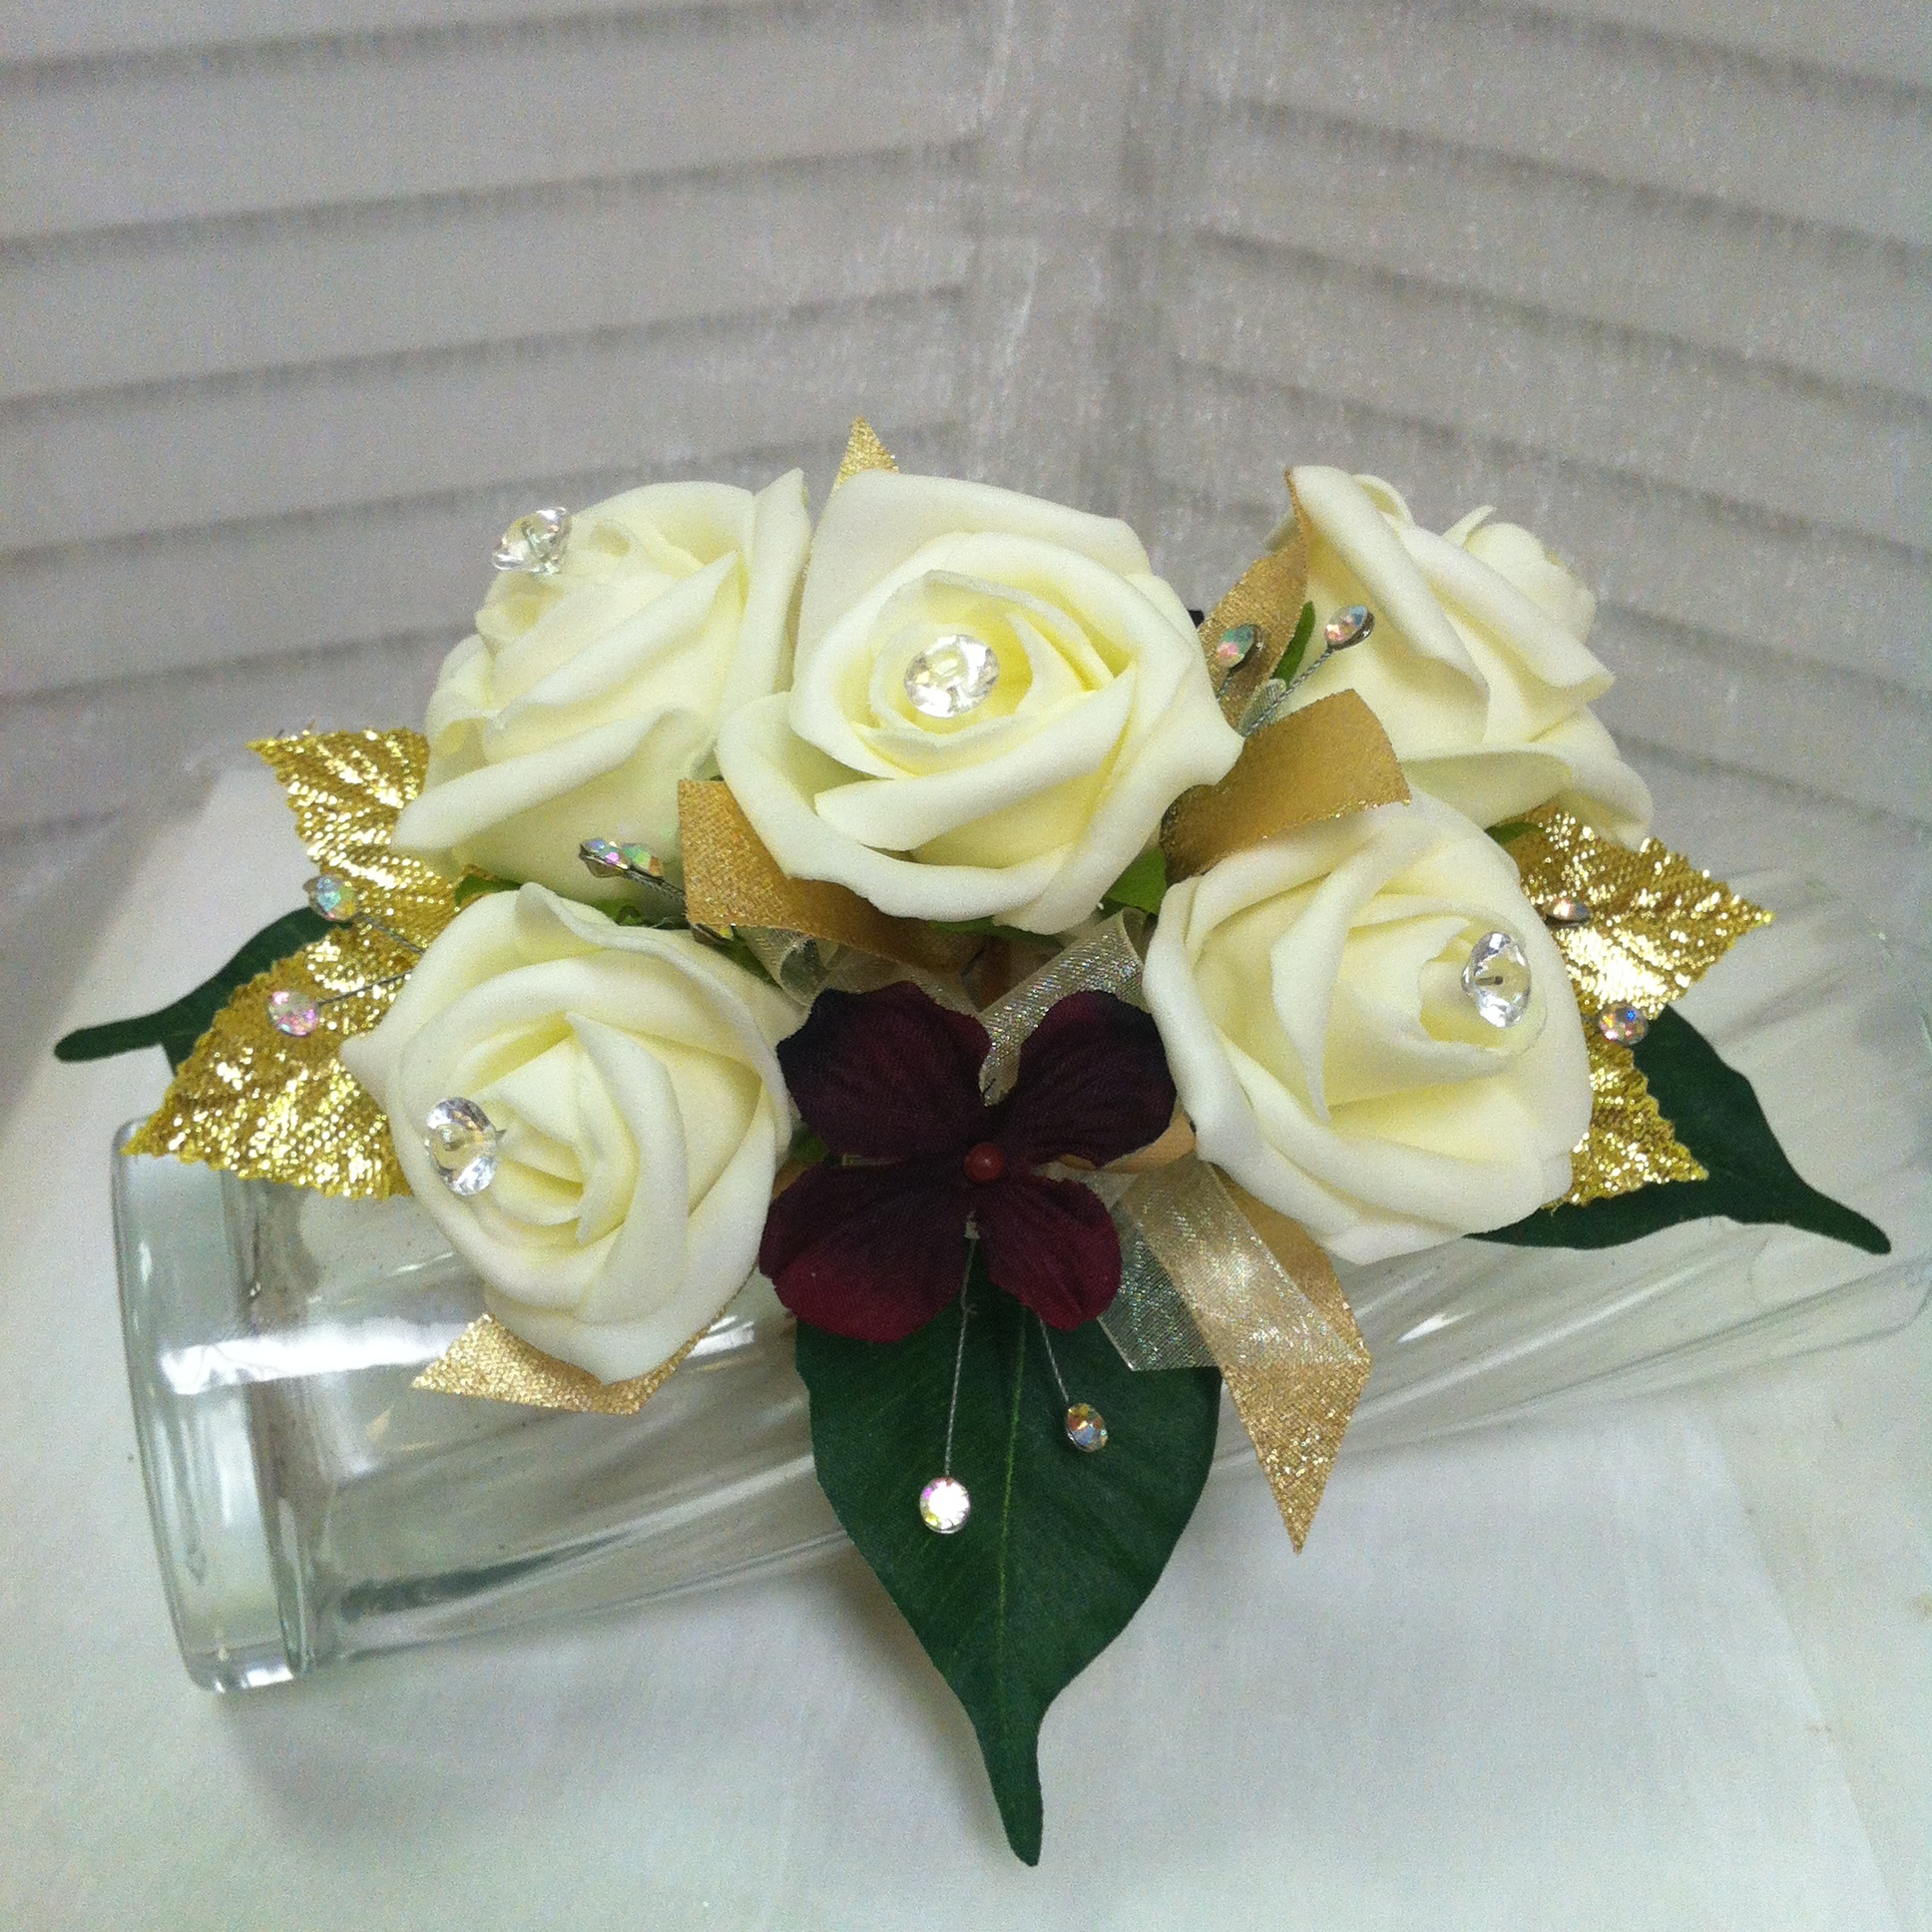 Plus Corsage (30) with Sparkly Leaves (2) $32